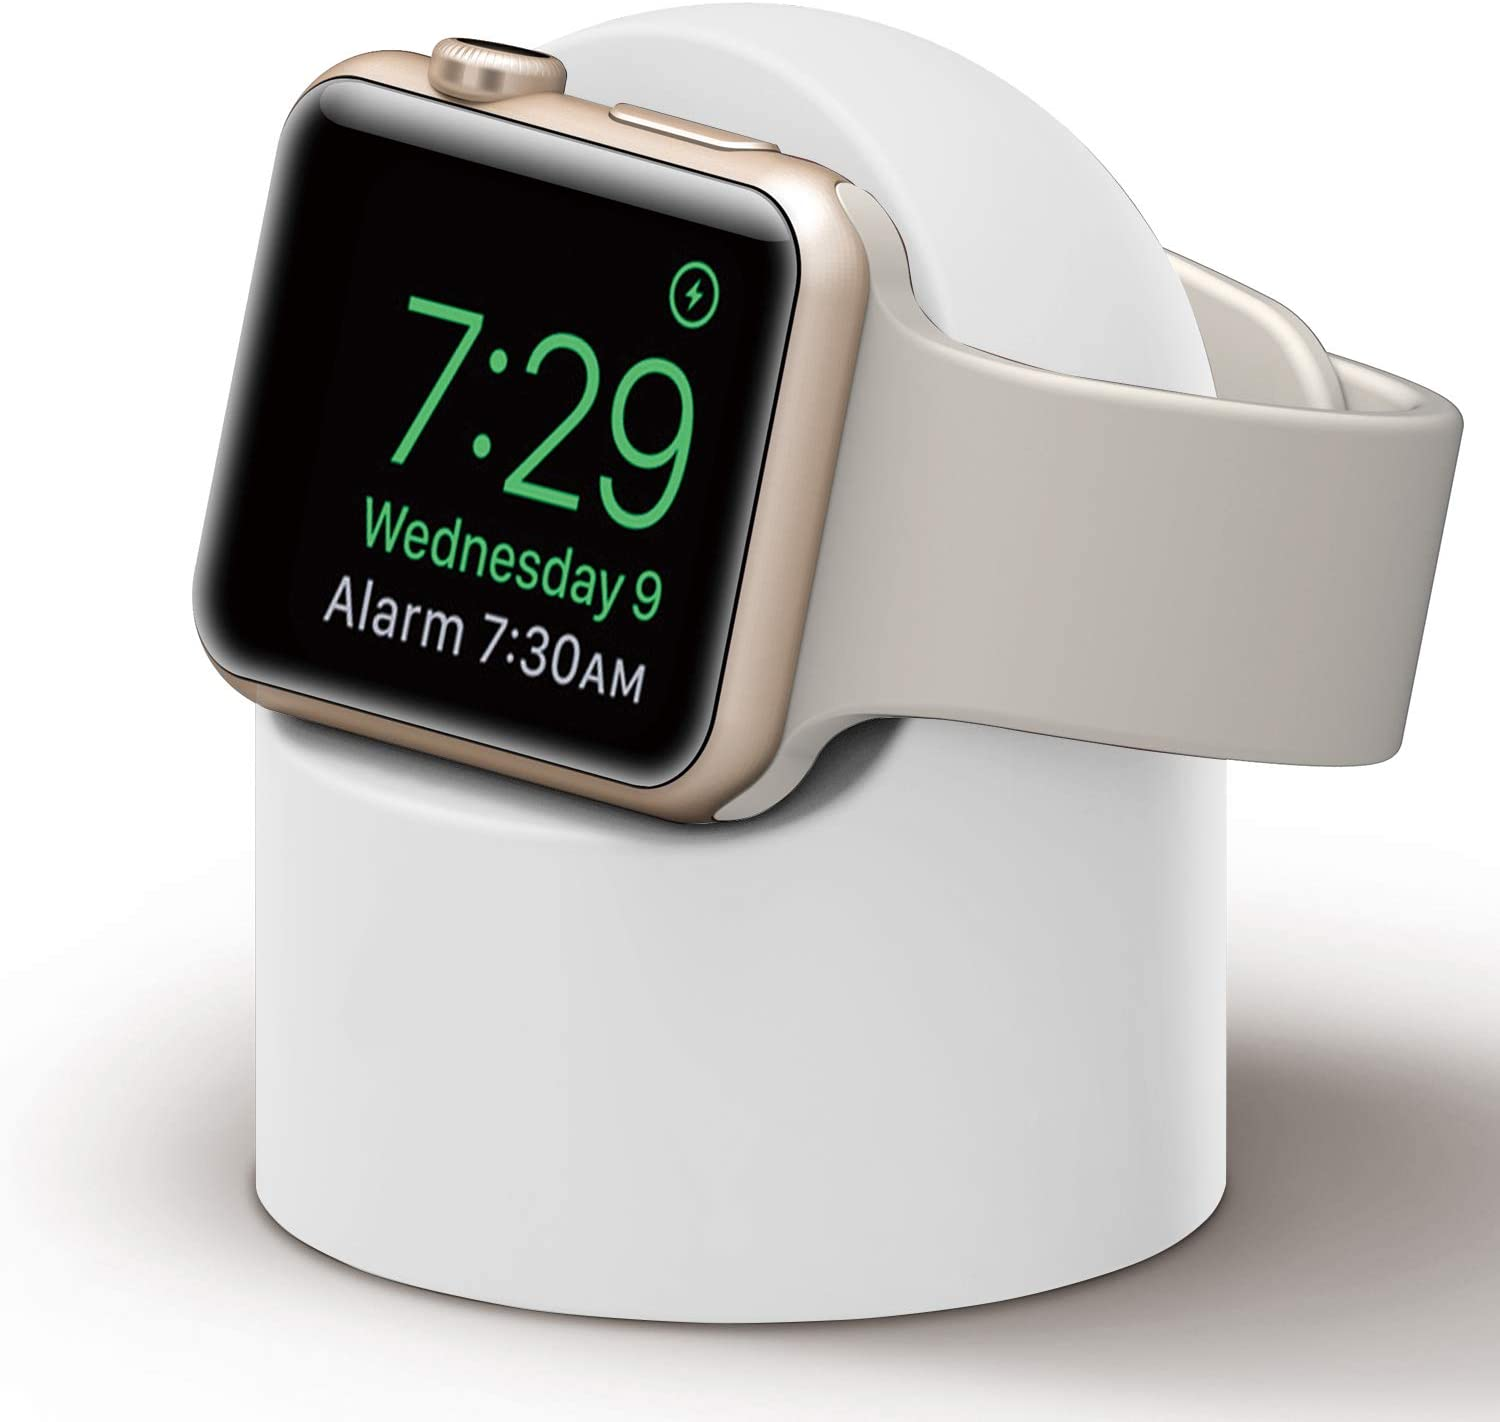 PROATL iWatch Charging Stand with Nightstand Mode, Silicone Charger Dock Holder for Apple Watch Series SE/6/5/4/3/2/1(44/42/40/38mm)?Adapters OR Cables NOT Included?(White)